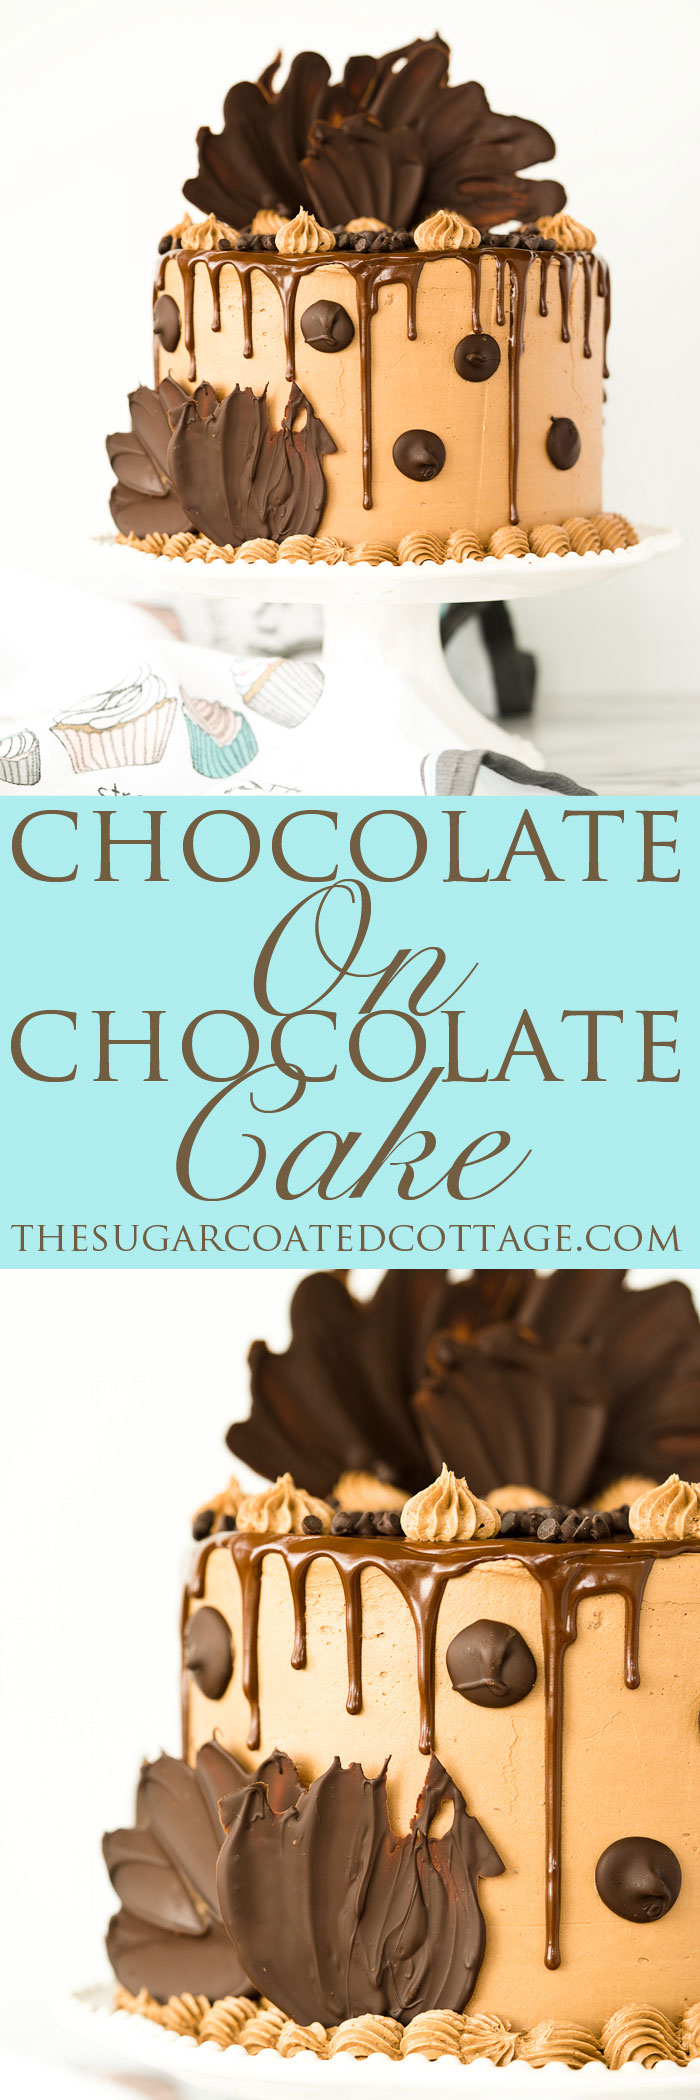 Chocolate On Chocolate Cake recipe. Chocolatey rich cake covered in a blanket of creamy Chocolate Swiss Meringue Buttercream. Dripping with chocolate ganache and adorned by more chocolate. | thesugarcoatedcottage.com